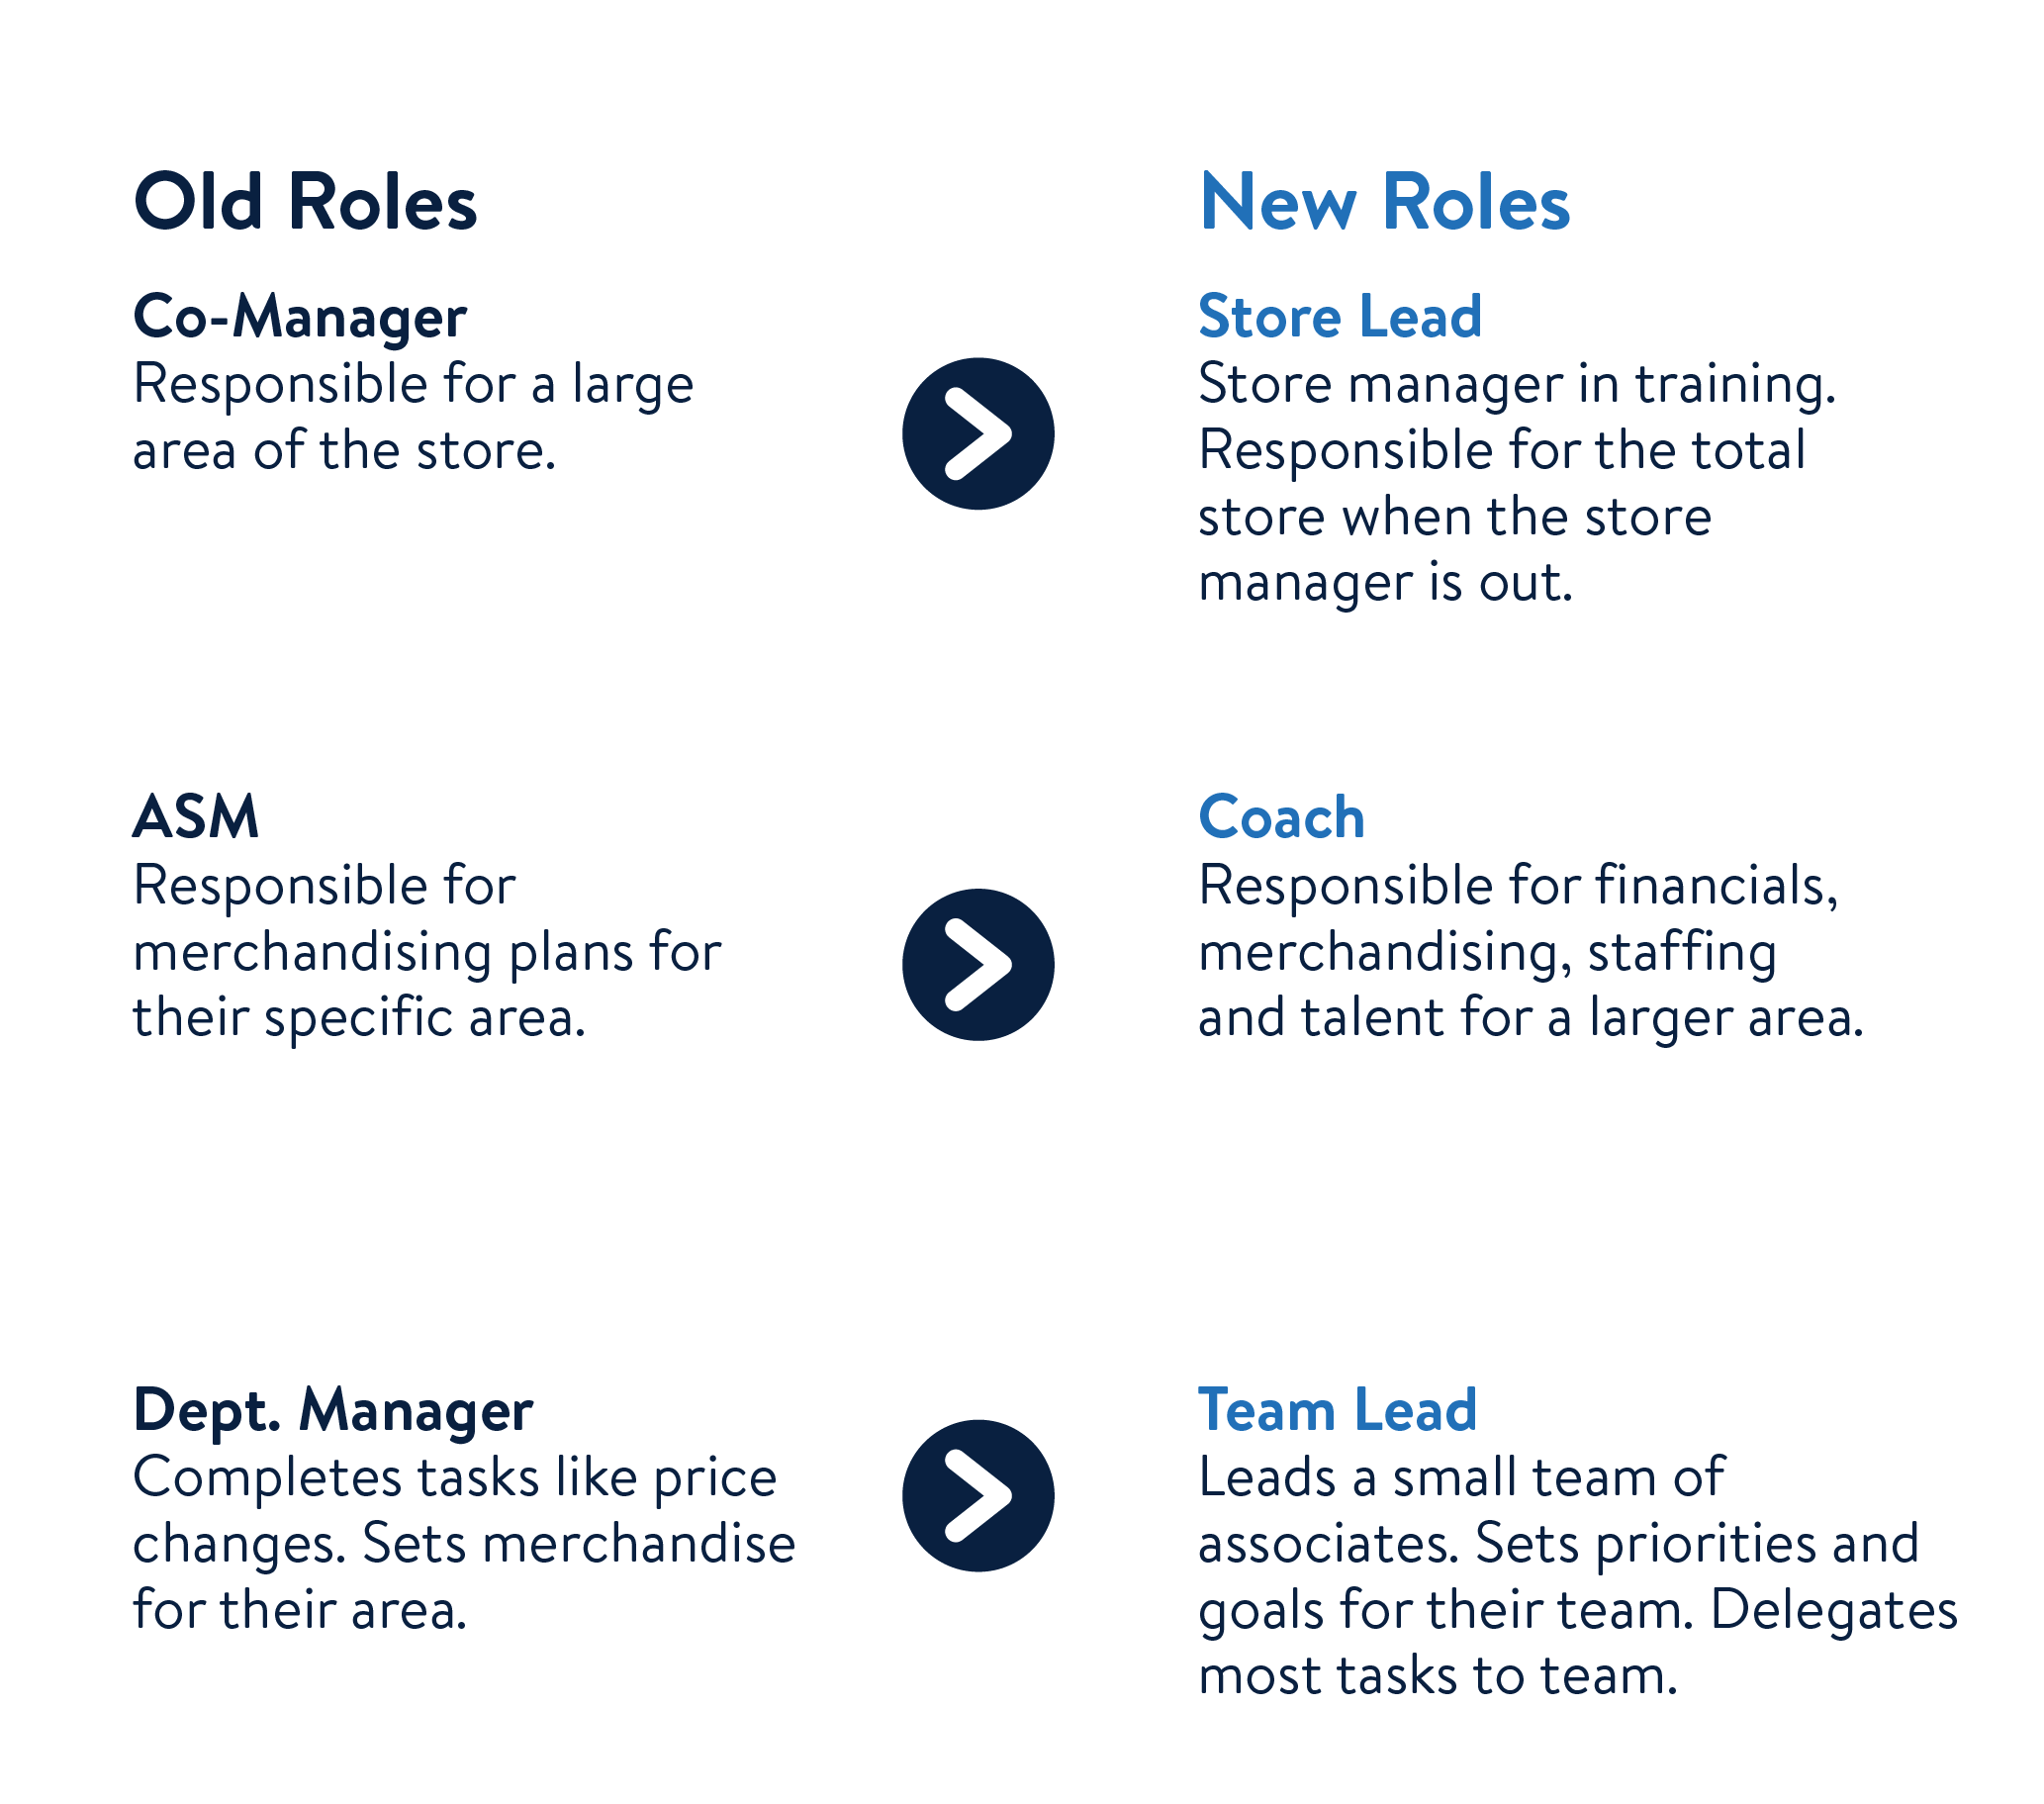 New Roles Graphic 2020